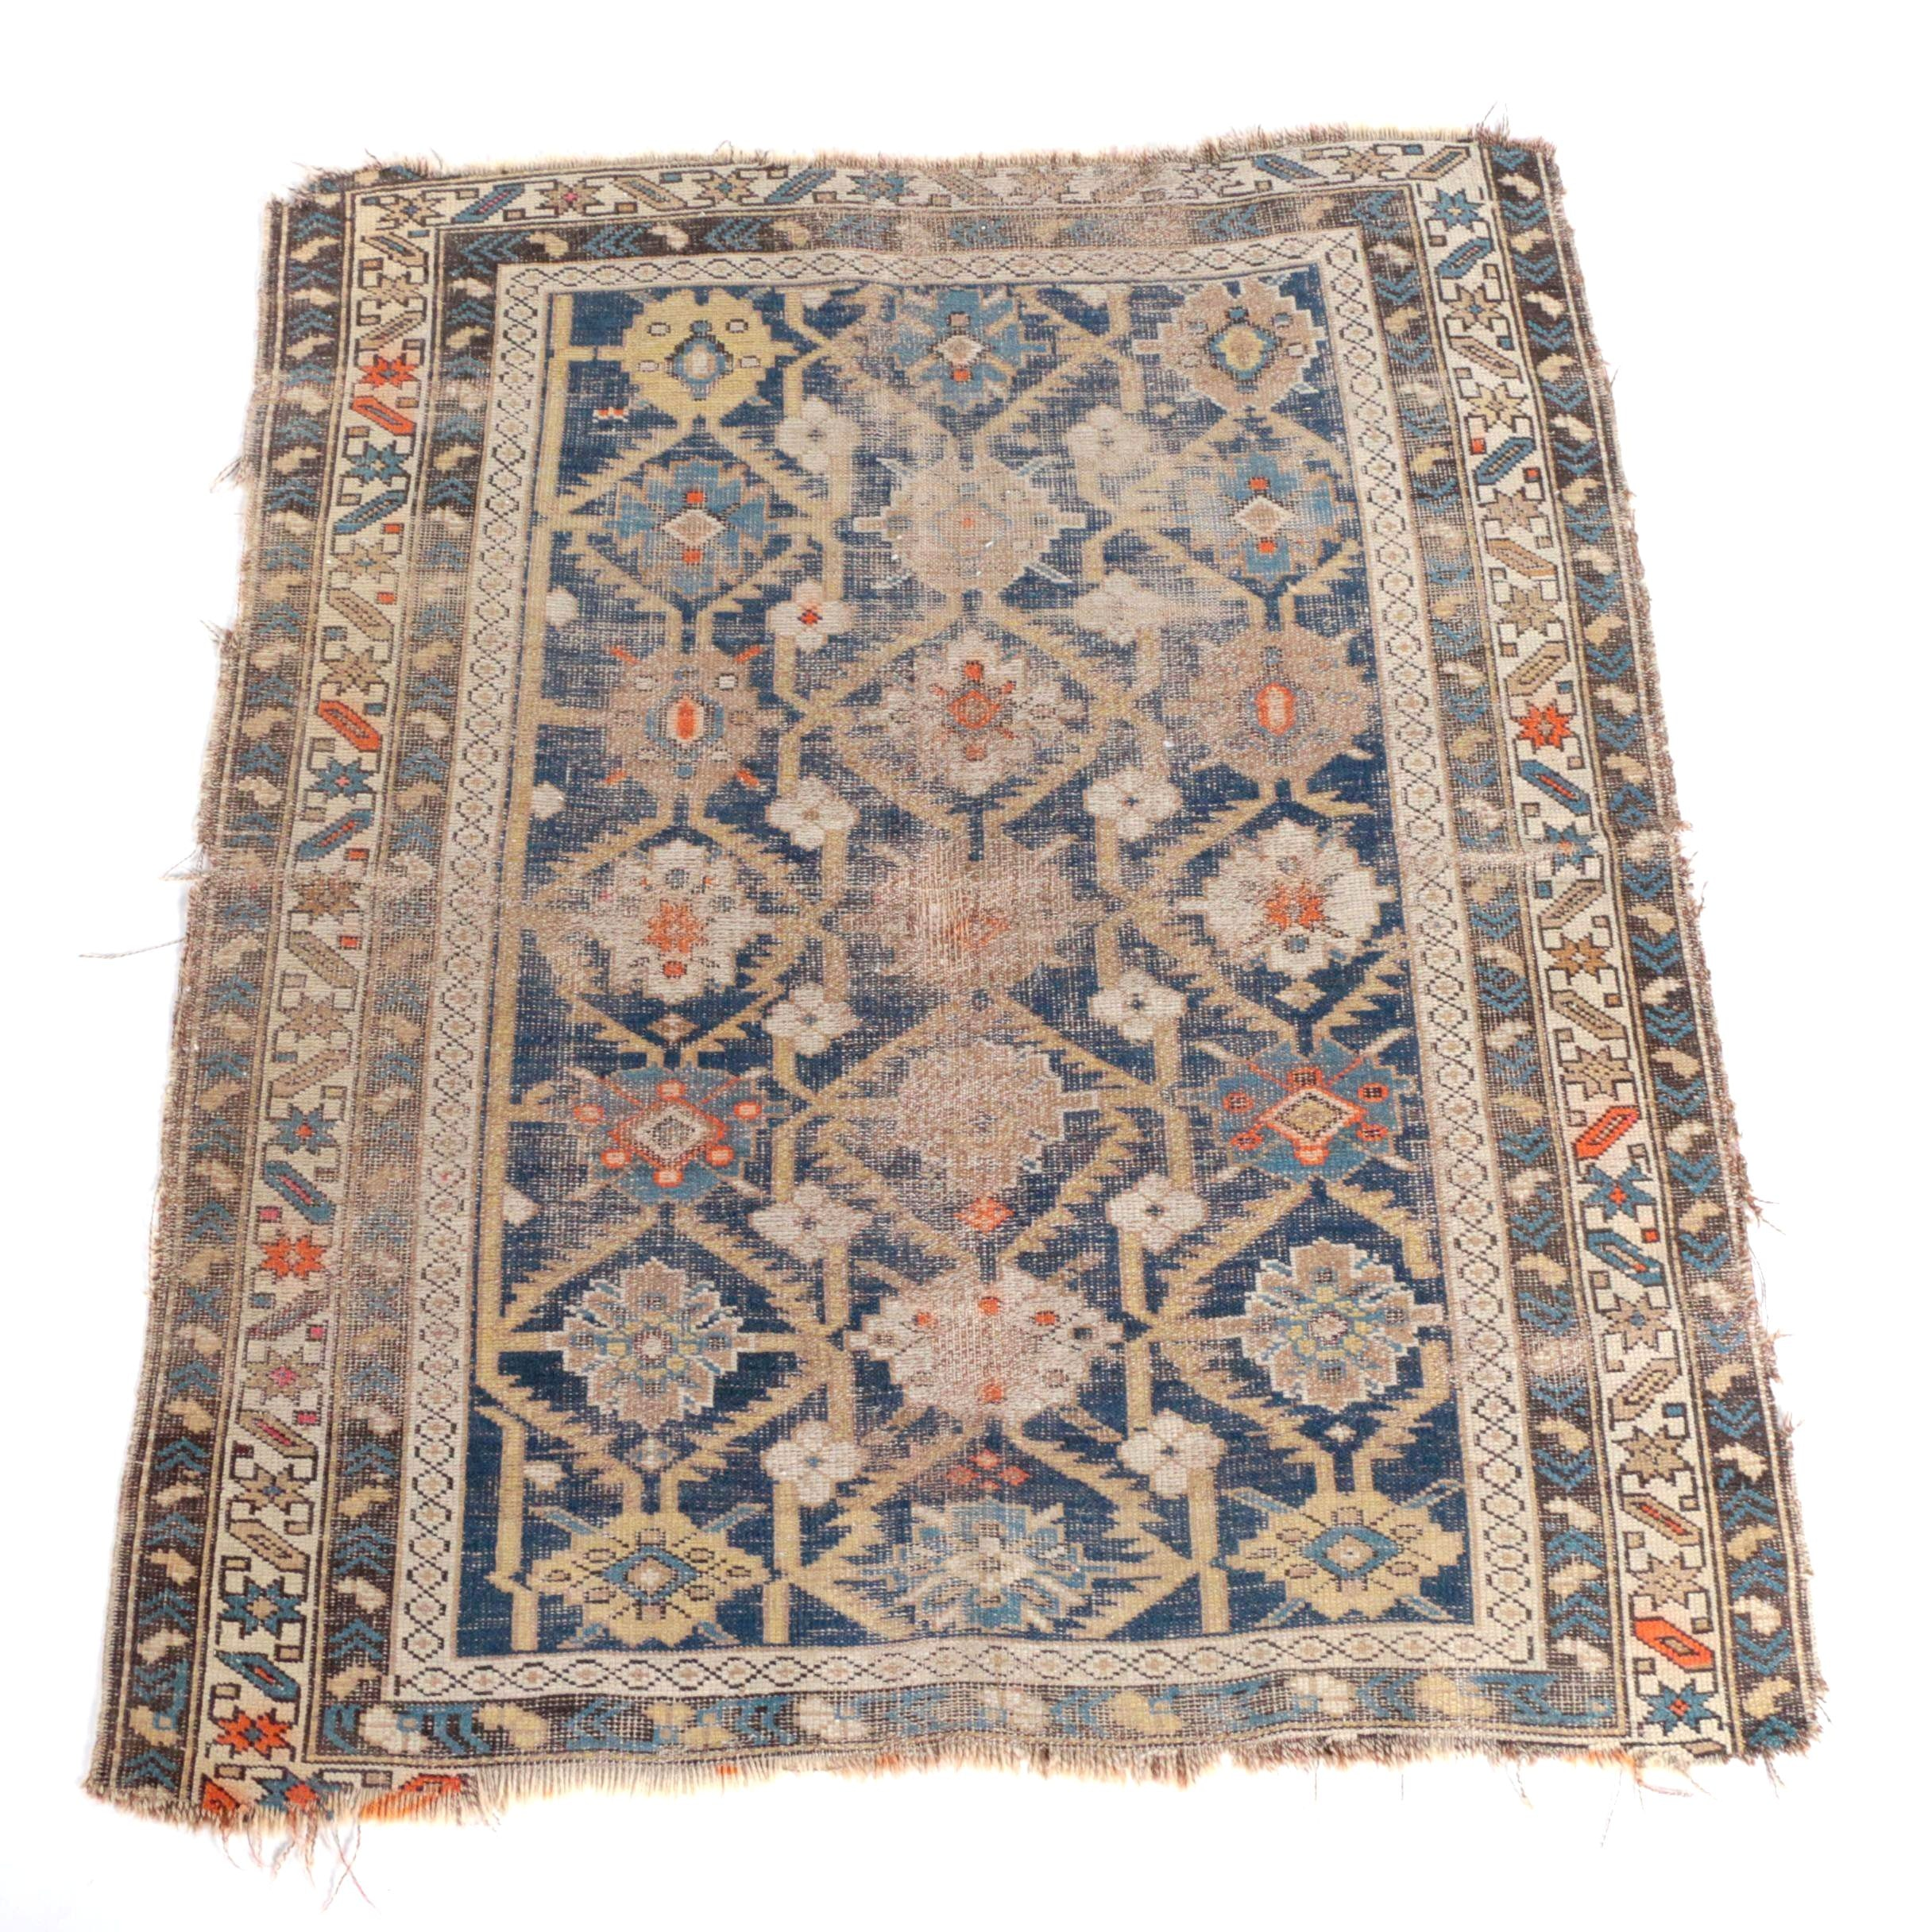 Semi-Antique Handwoven Caucasian Wool Accent Rug